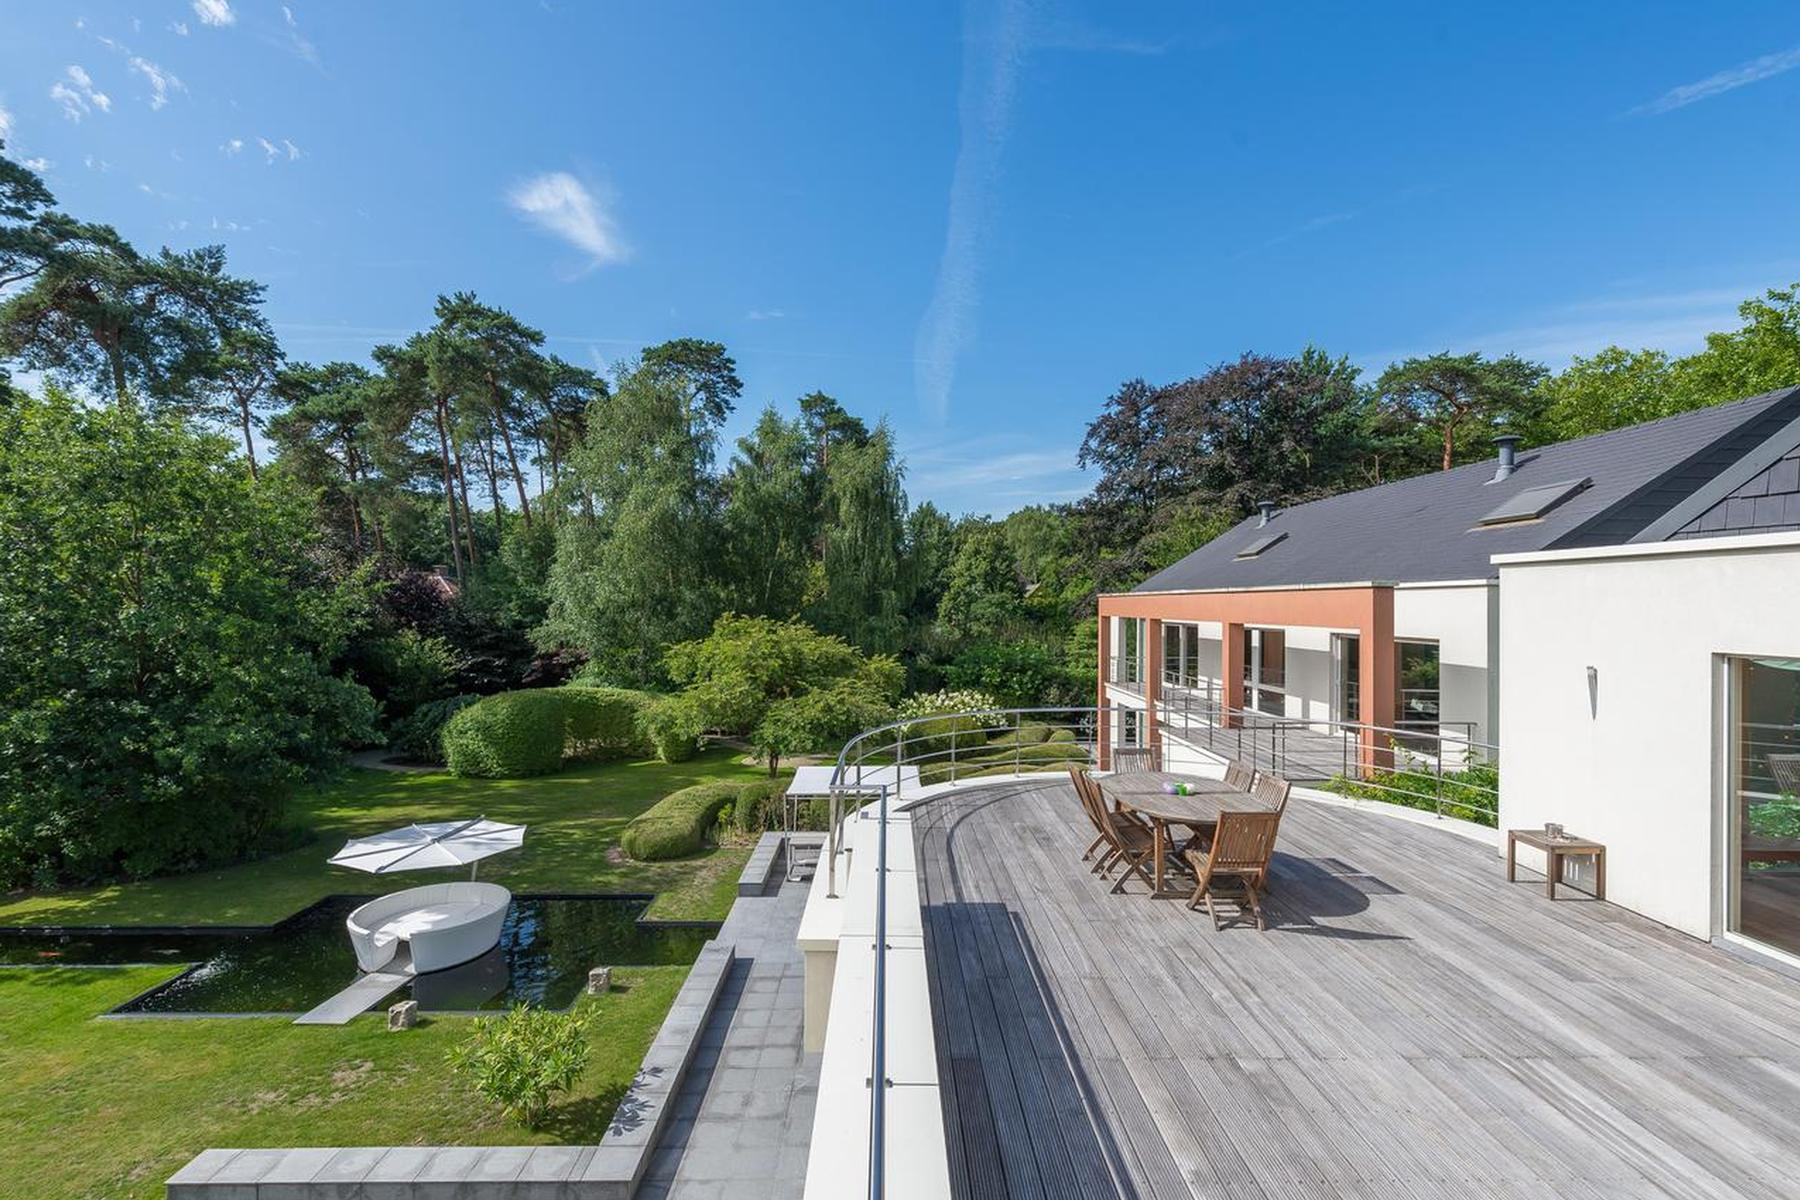 Other Residential for Sale at Anvers I Brasschaat Other Belgium, Other Areas In Belgium, 2930 Belgium